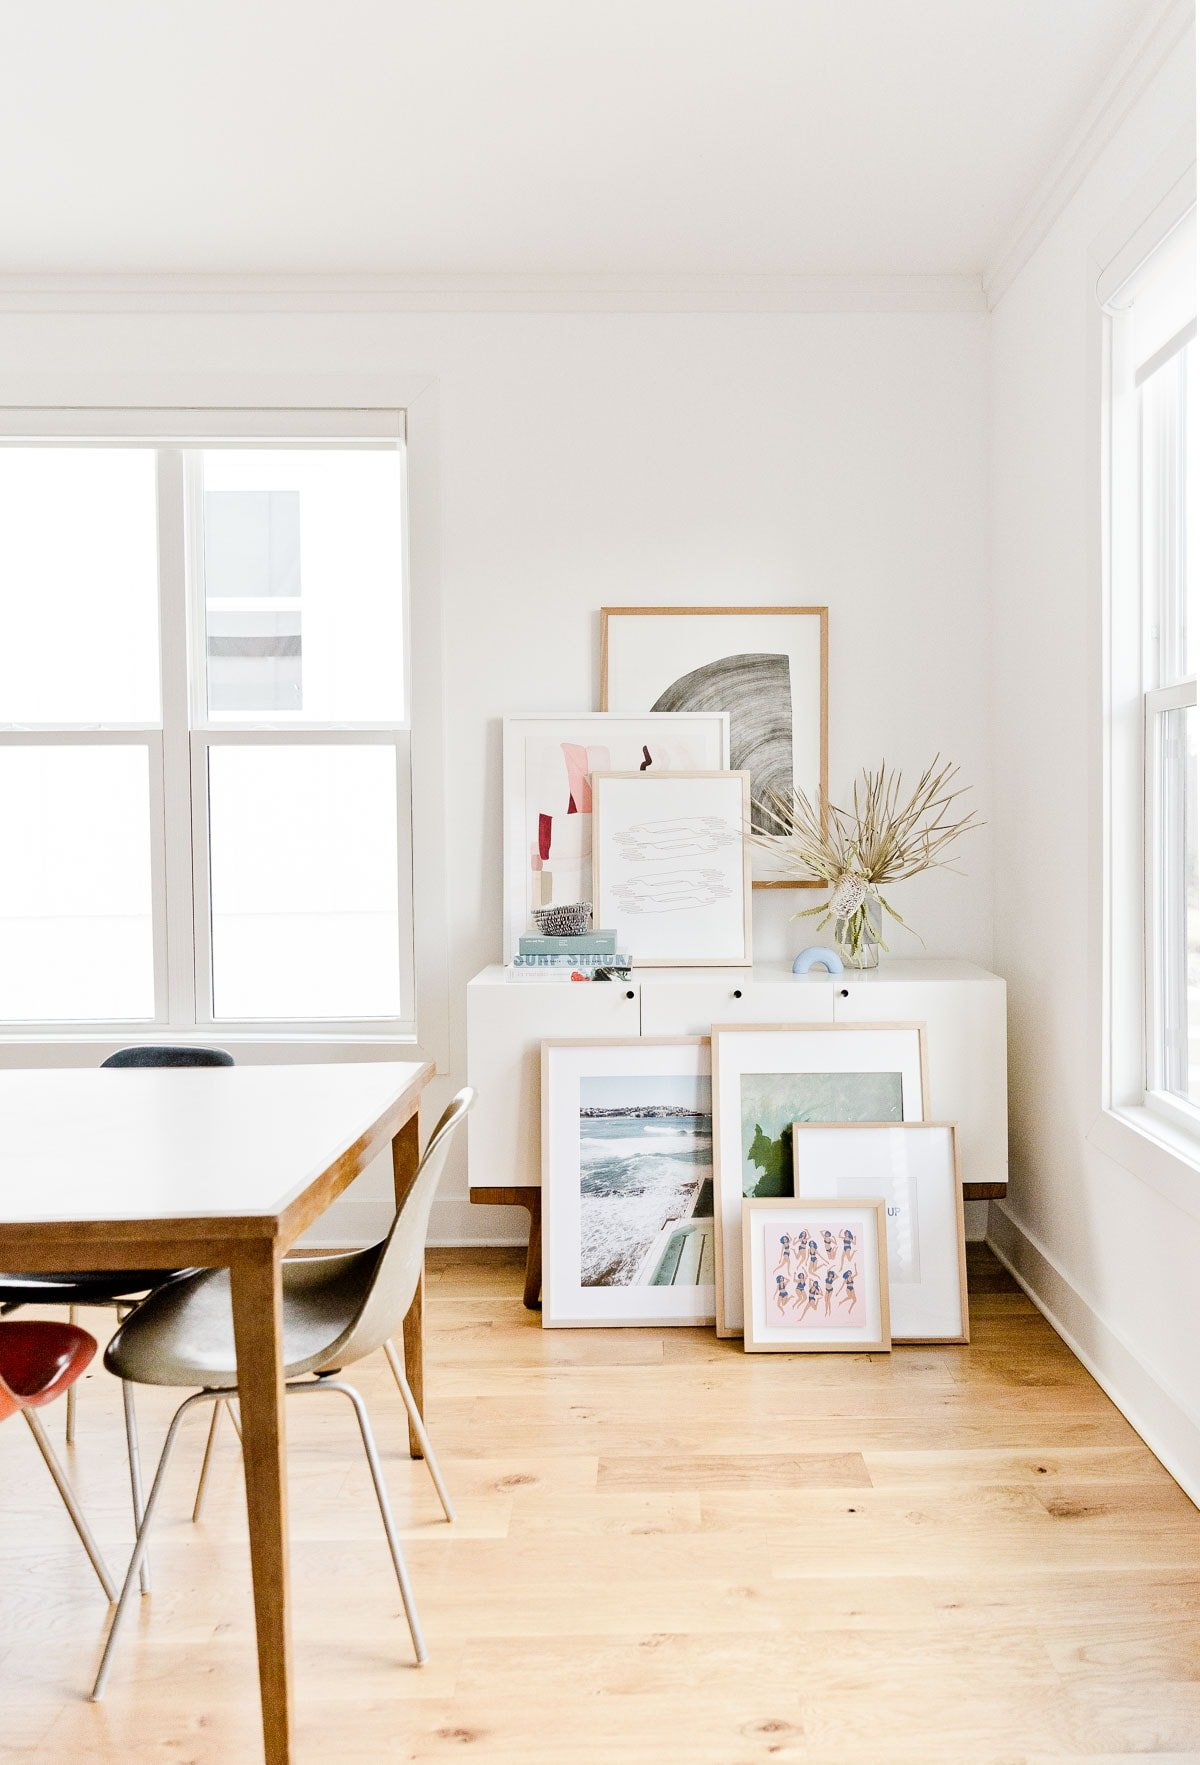 Abstract artwork piled and leaning against a wall in modern home.